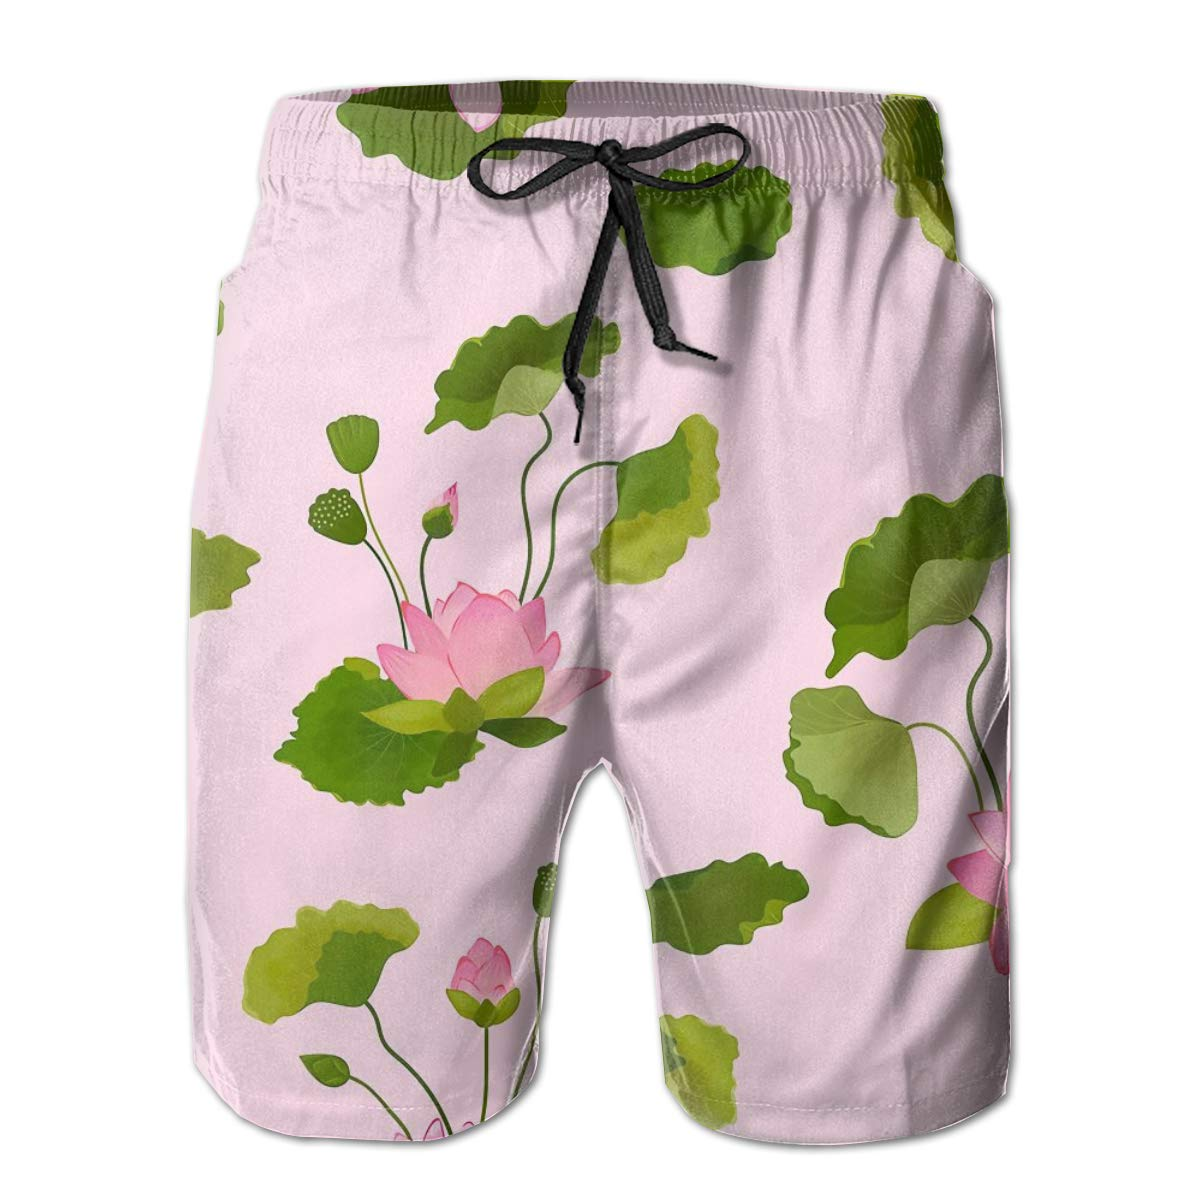 SARA NELL Mens Shorts Lotus Flowers and Leaves Pink Quick Dry Swim Trunks Beach Board Shorts